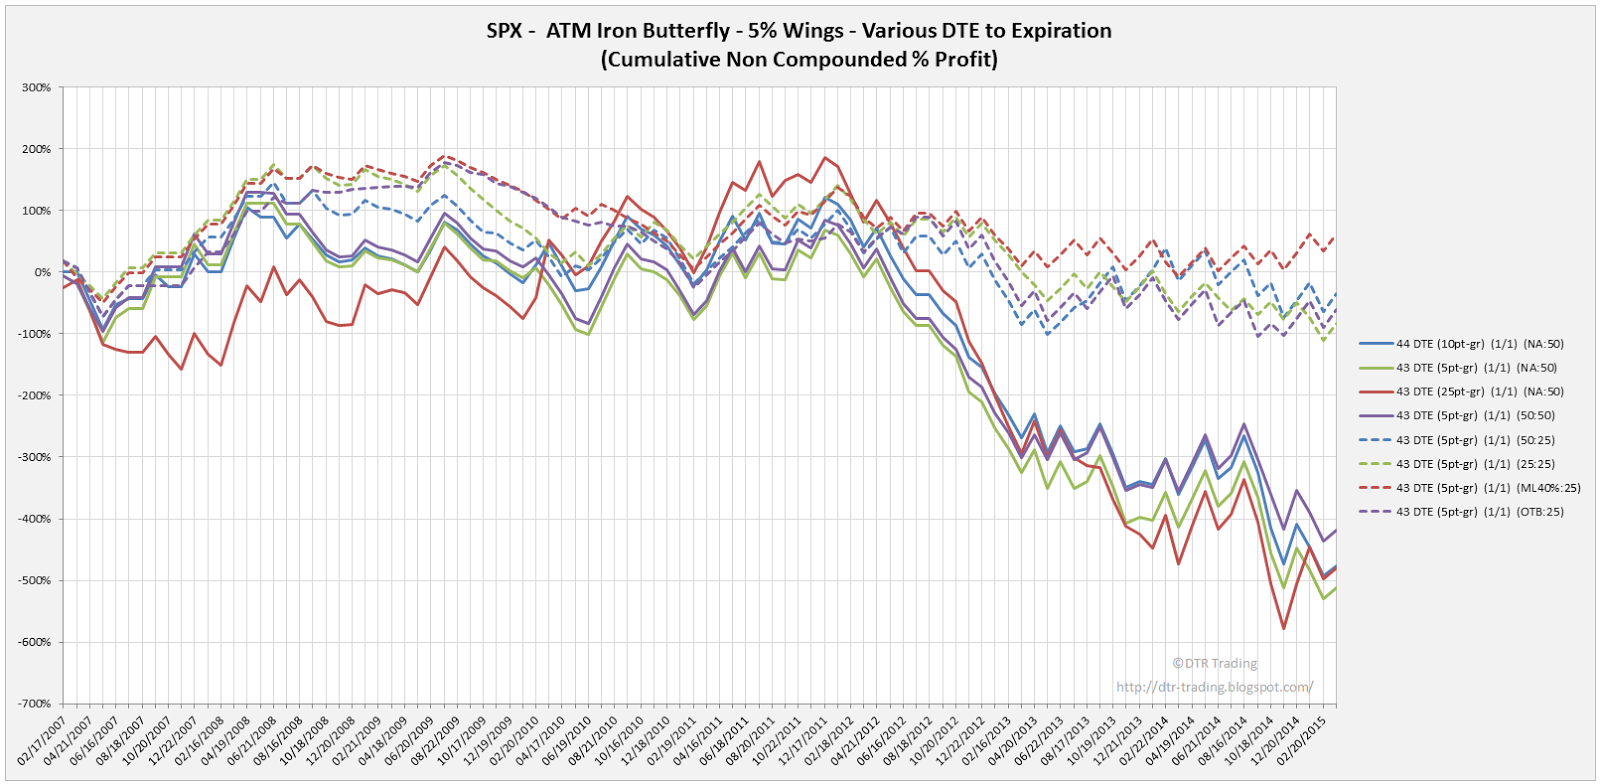 Iron Butterfly Dynamic Exit Equity Curves SPX 43 DTE 5 Percent Wing Widths